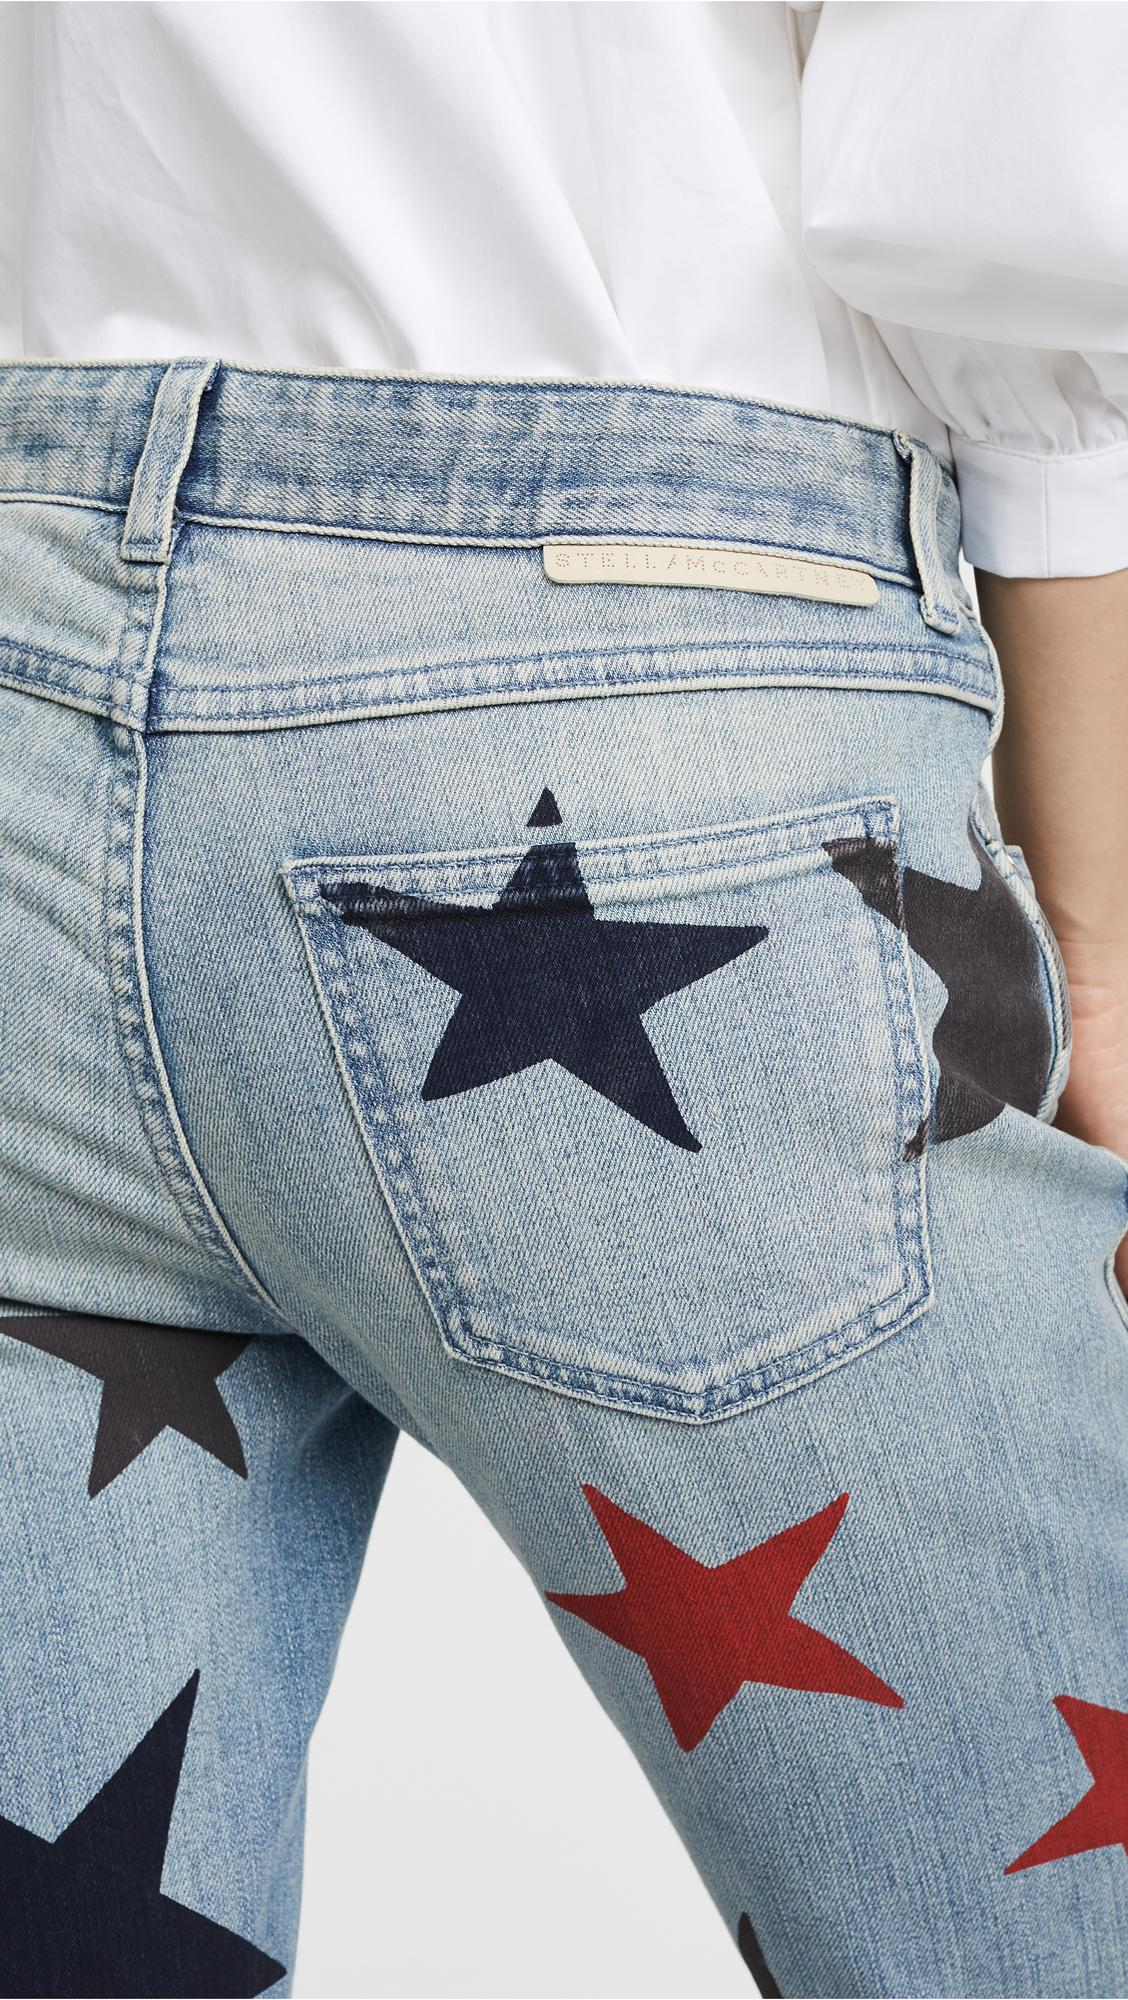 Stella McCartney Denim The Skinny Boyfriend Jeans With Stars in Blue